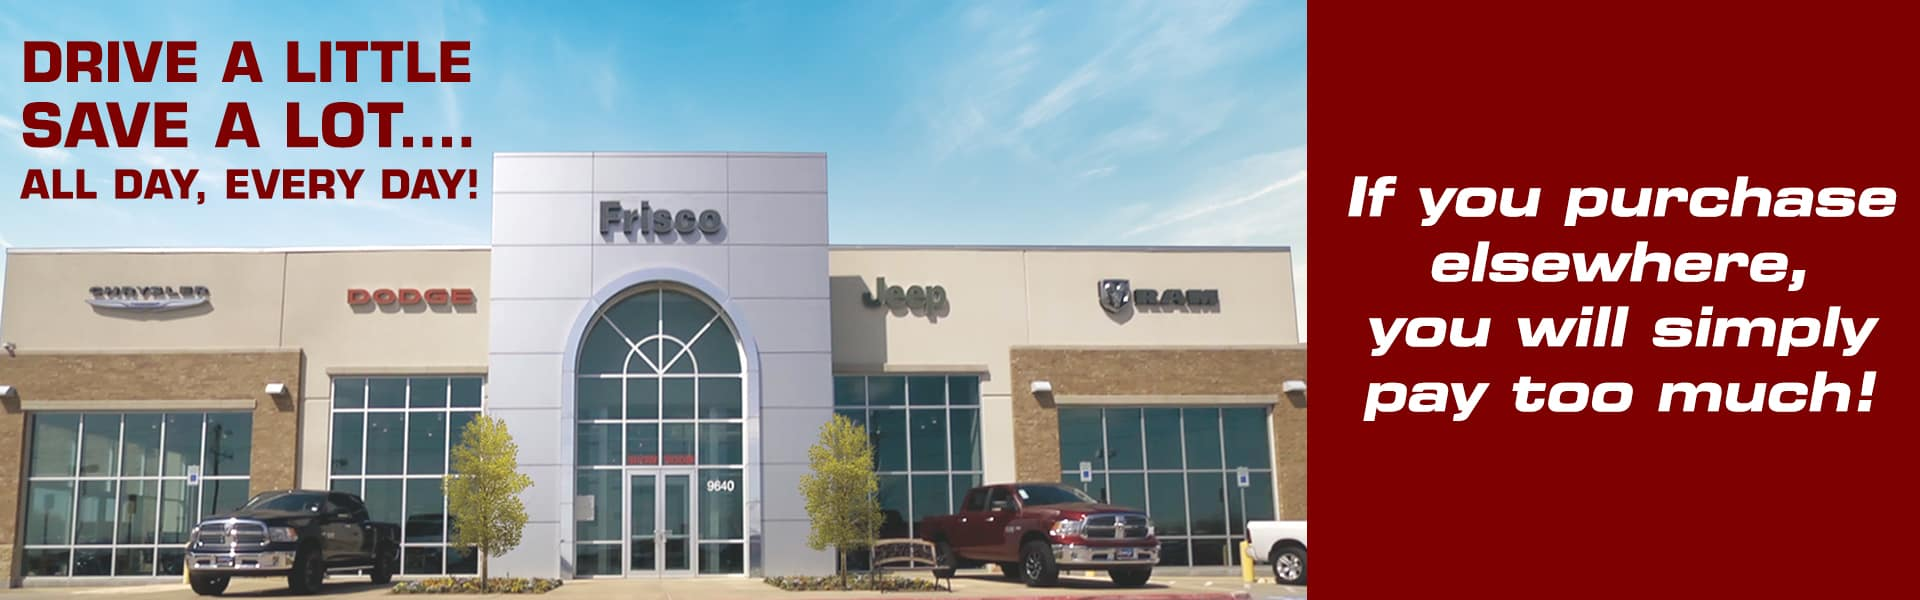 Frisco Chrysler Dodge Jeep Ram | CDJR Dealer Serving Plano, TX